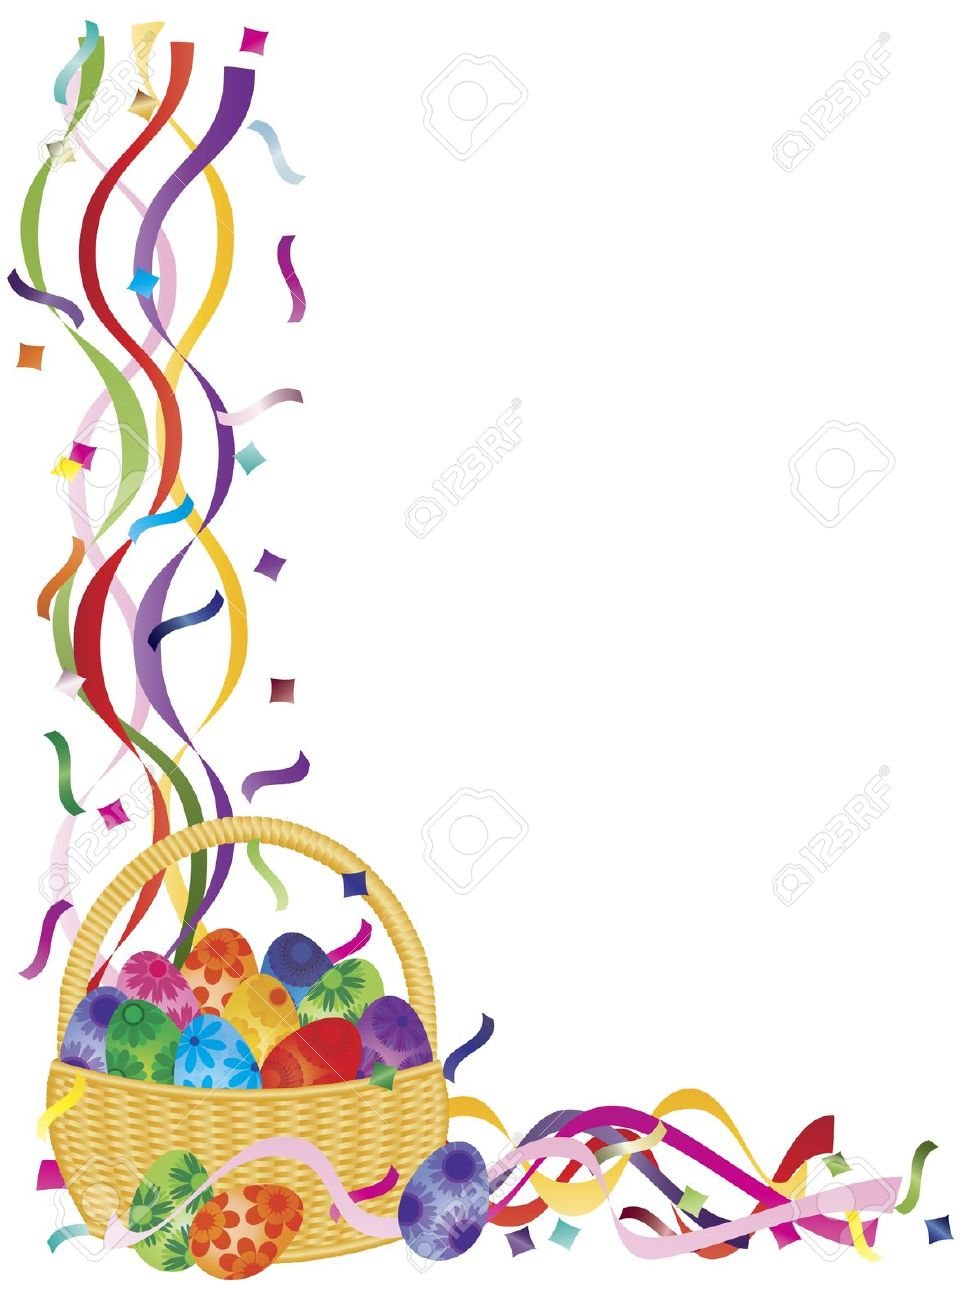 Easter Border | Free download on ClipArtMag